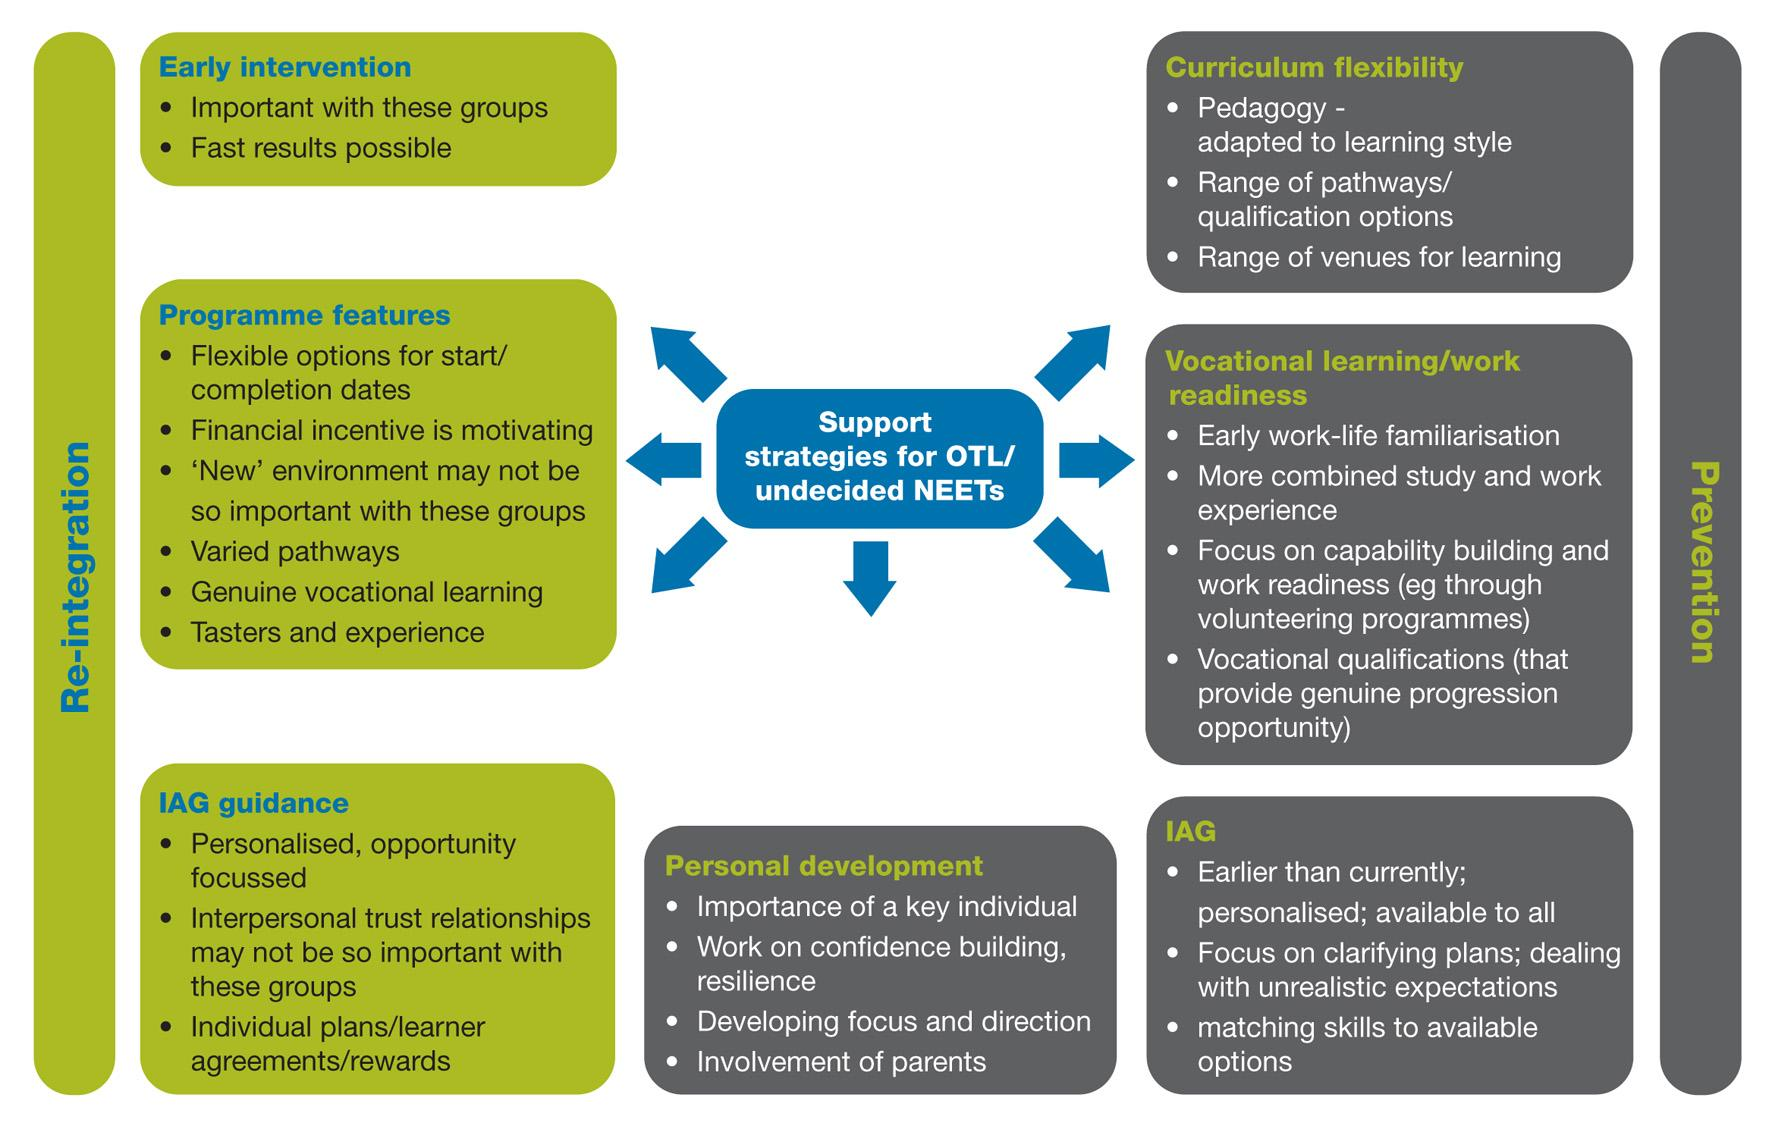 Figure 2 Potential strategies for supporting open to learning and undecided NEETs 36